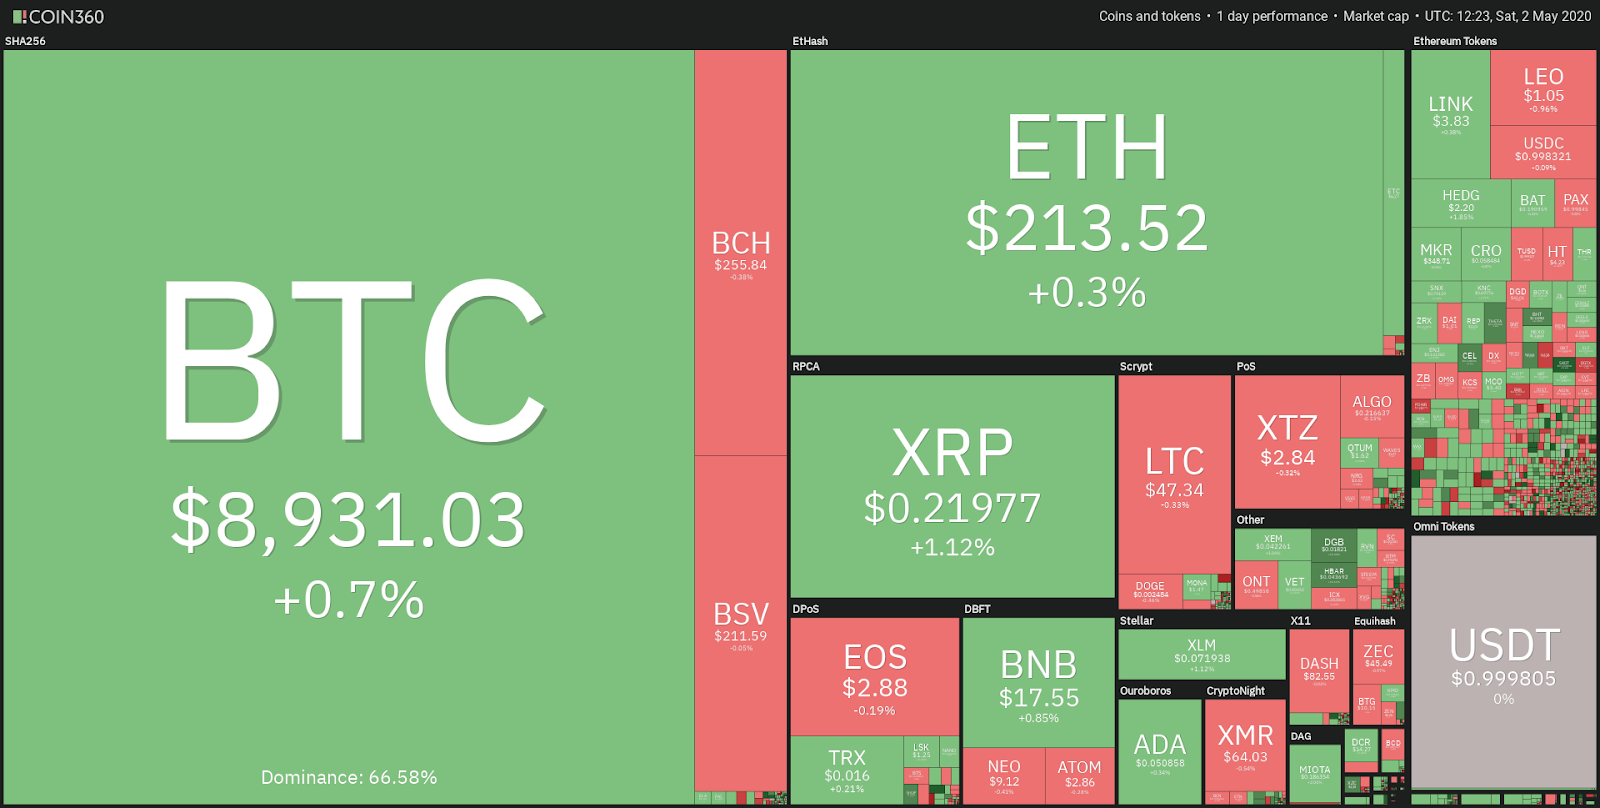 Daily performance of the crypto market. Source: Coin360